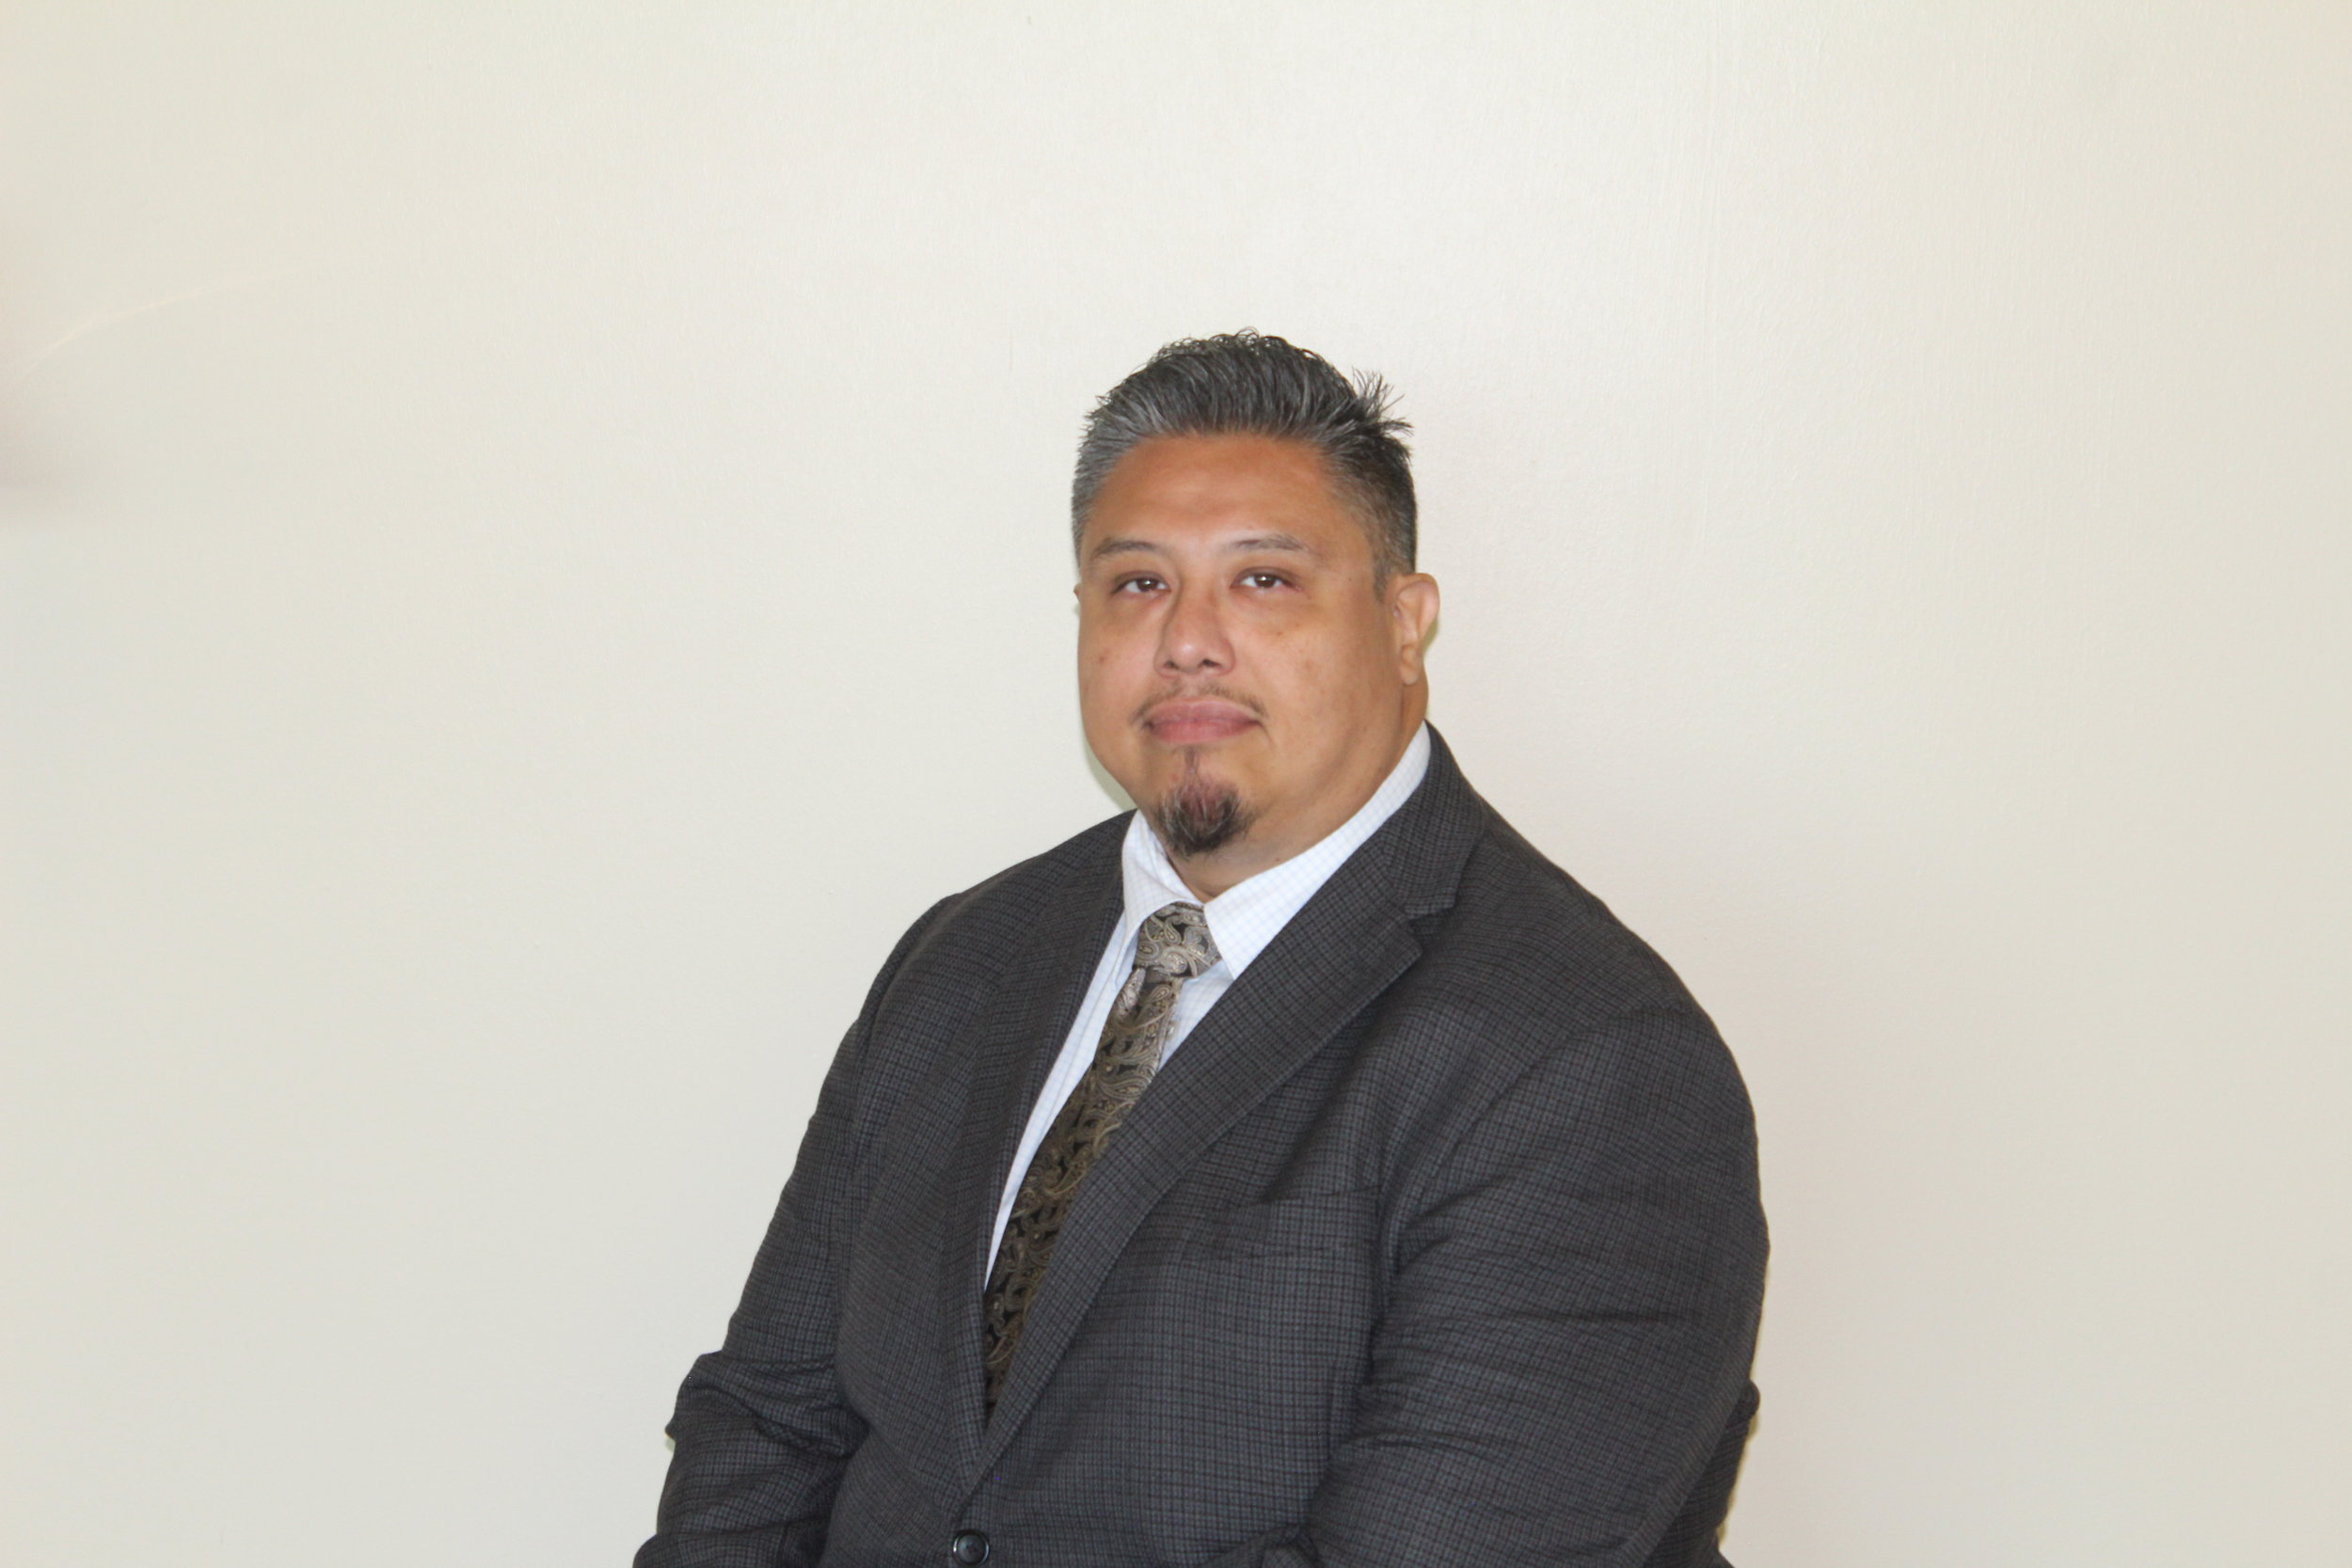 Raul Reyes, Community Service Coordinator, City of Dallas